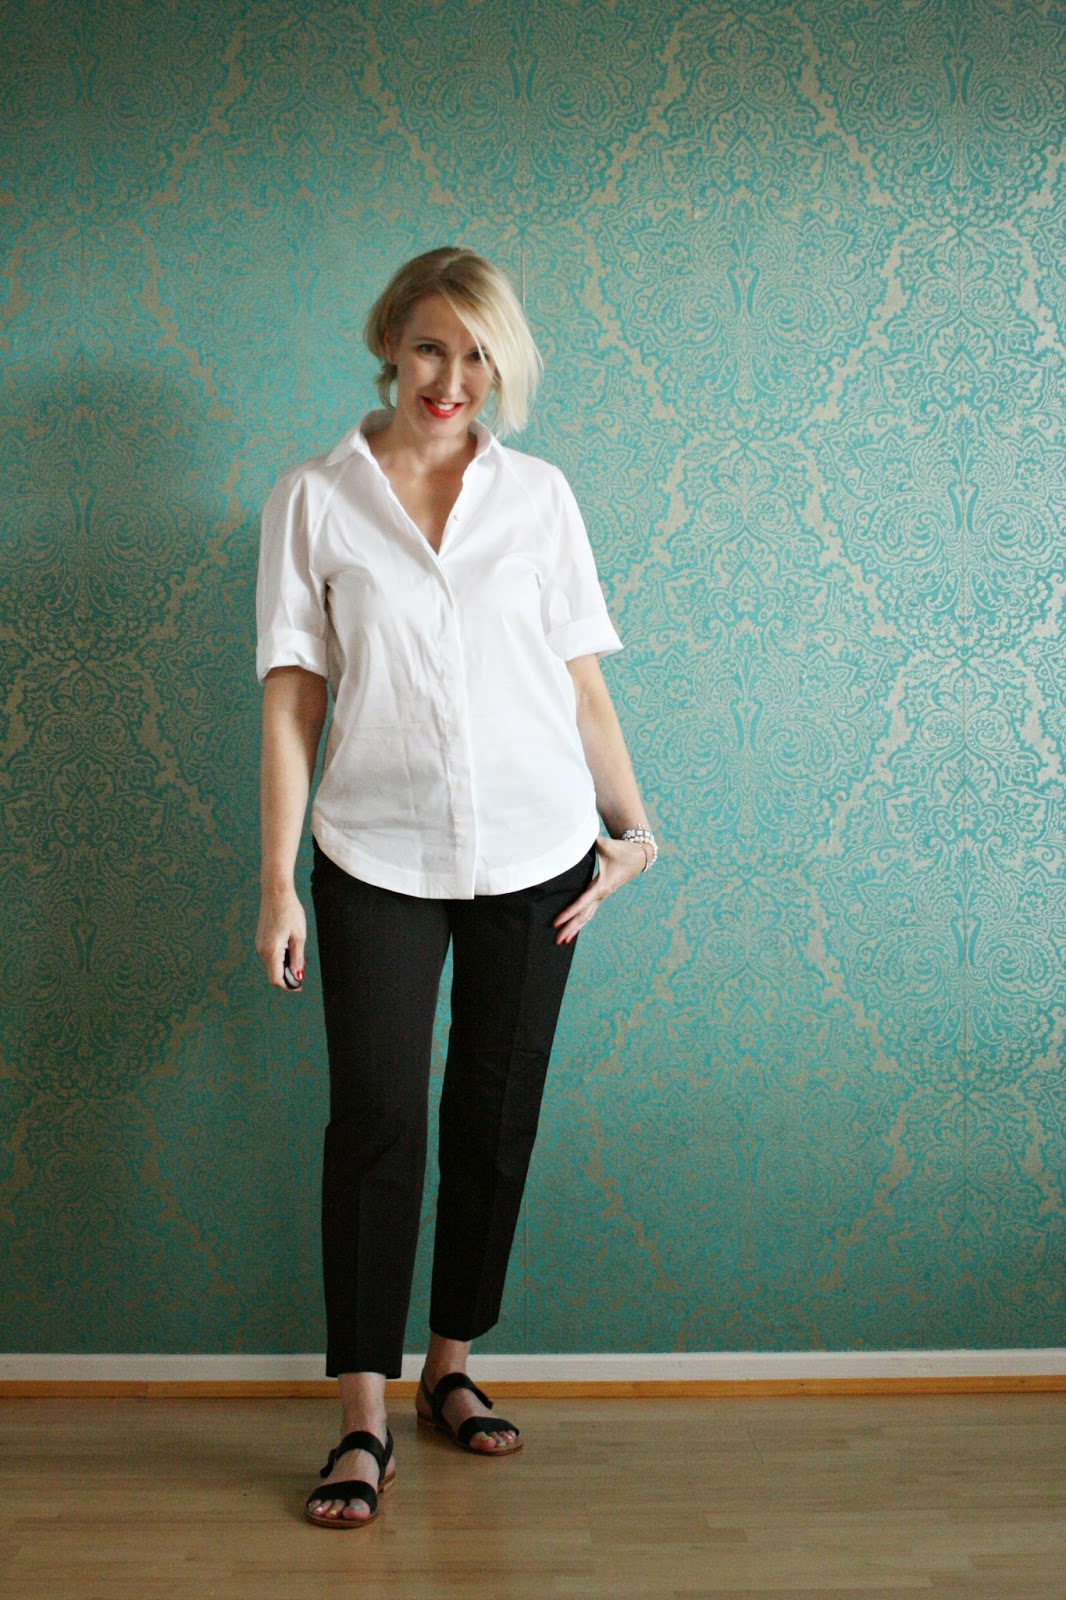 Schwarze hose weisse bluse outfit